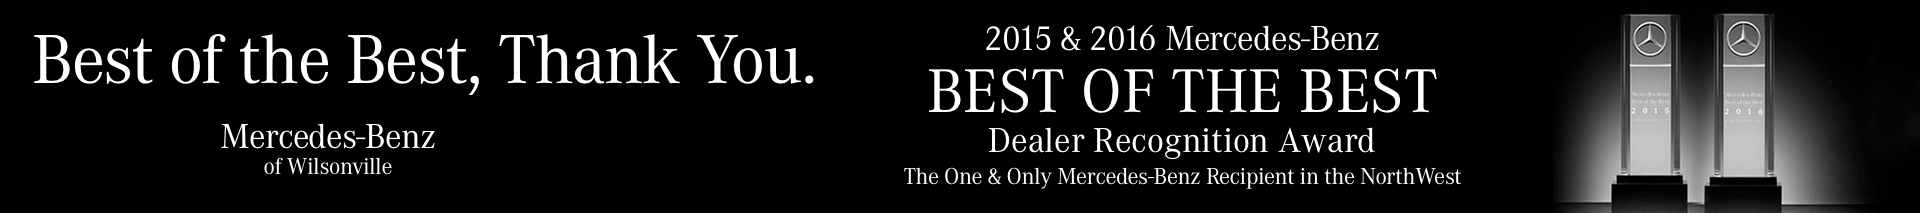 What is the Mercedes-Benz Best of the Best Award?